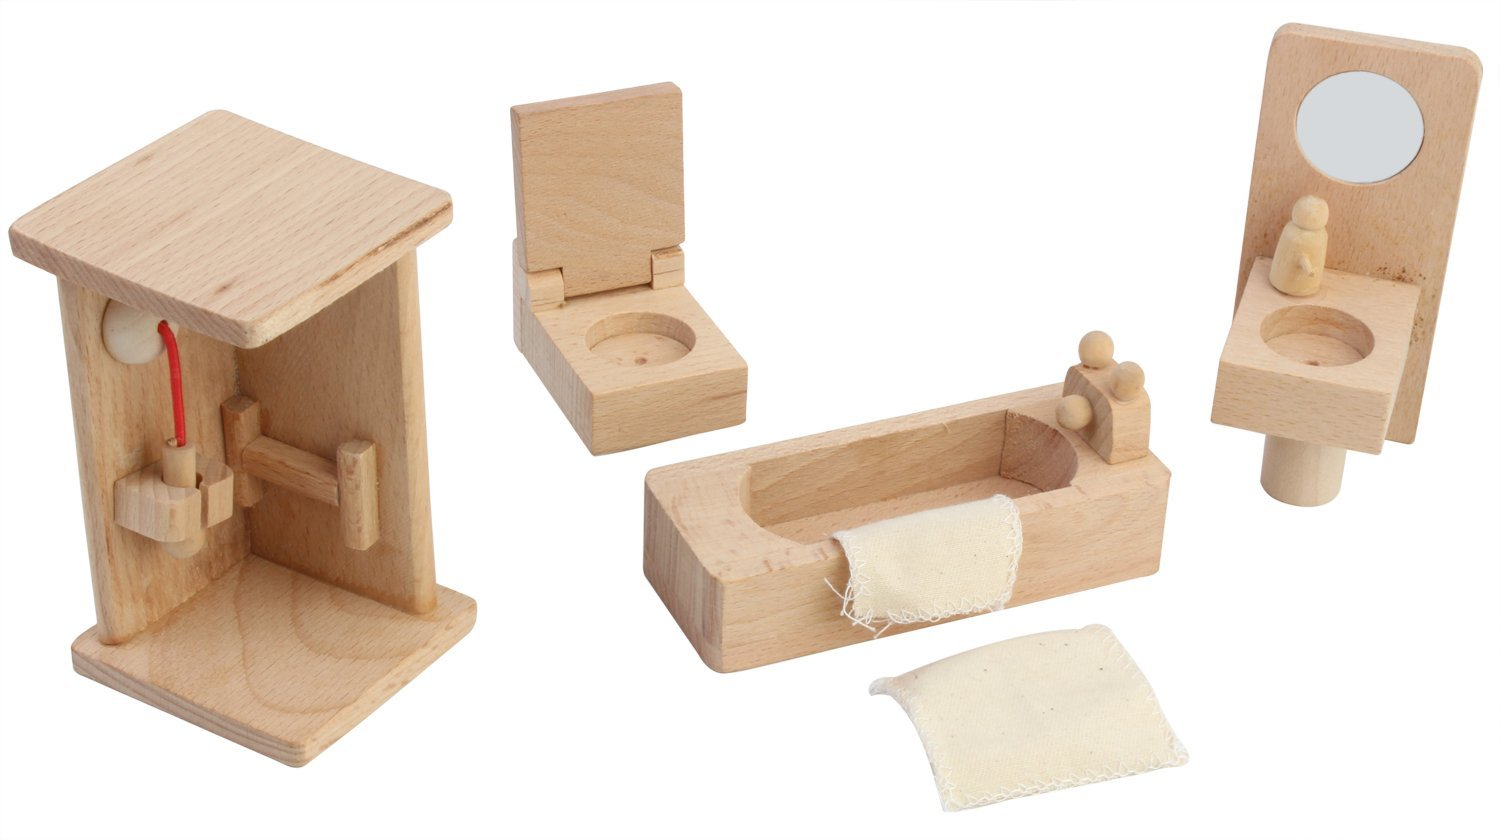 furniture miniature. Buy PIGLOO ™ Solid Wood Miniature Toy Dollhouse Bathroom Furniture Online At Low Prices In India - Amazon.in B